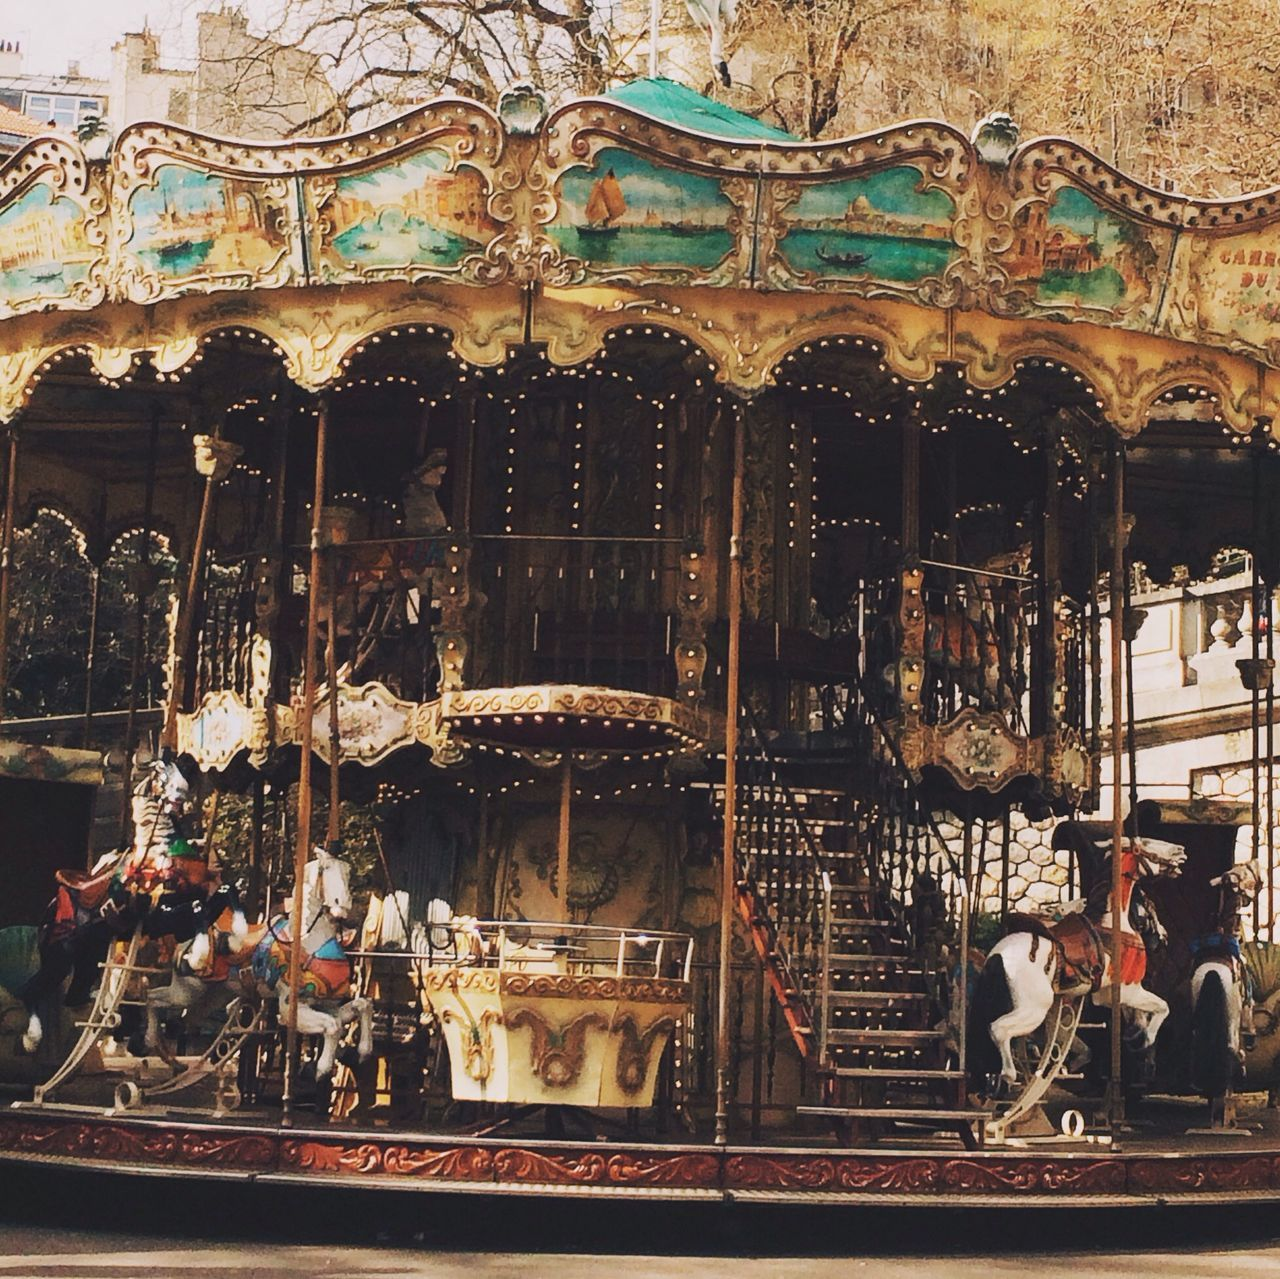 Carousel in amusement park